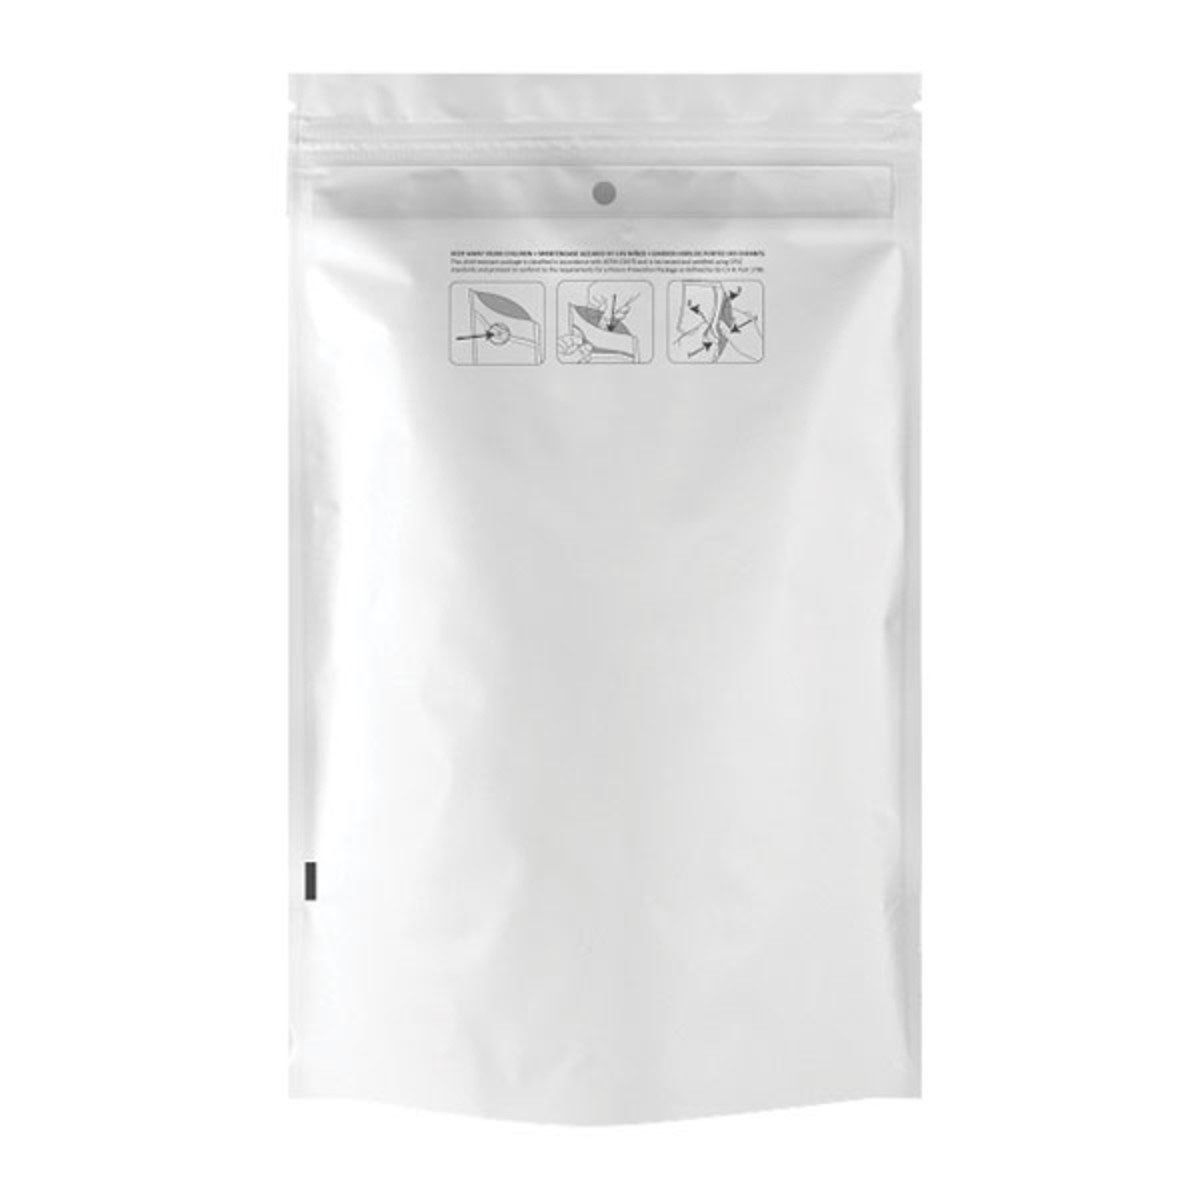 Ounce Dymapak™ Child Resistant Bag White/clear (1,000 Qty.)